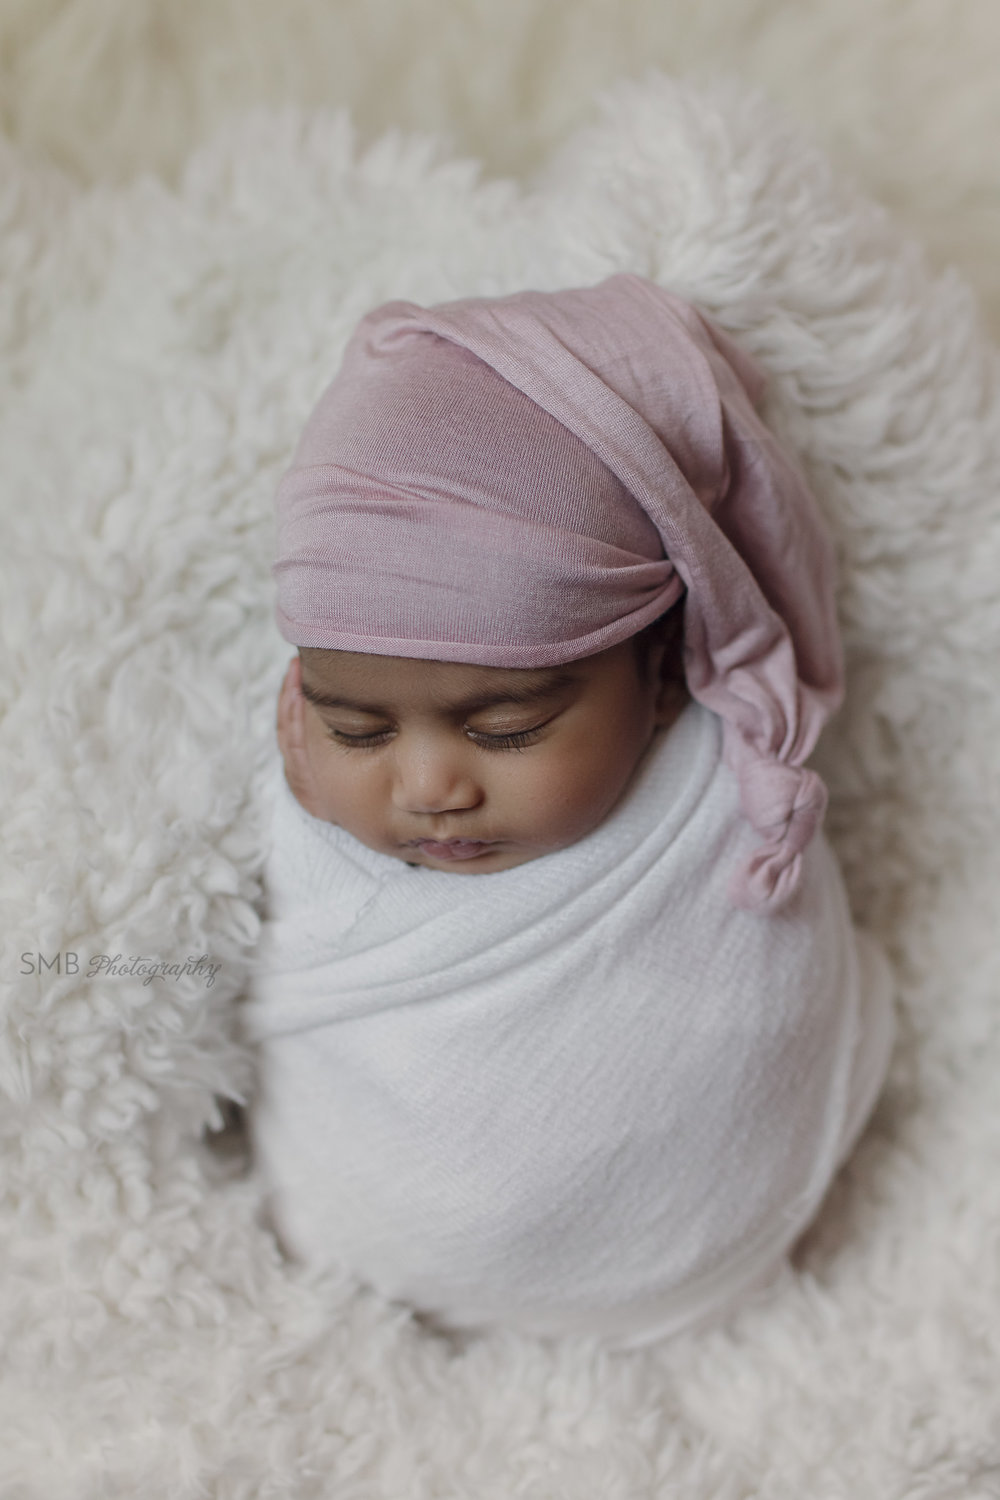 Newborn sleeping on fuzzy white blanket